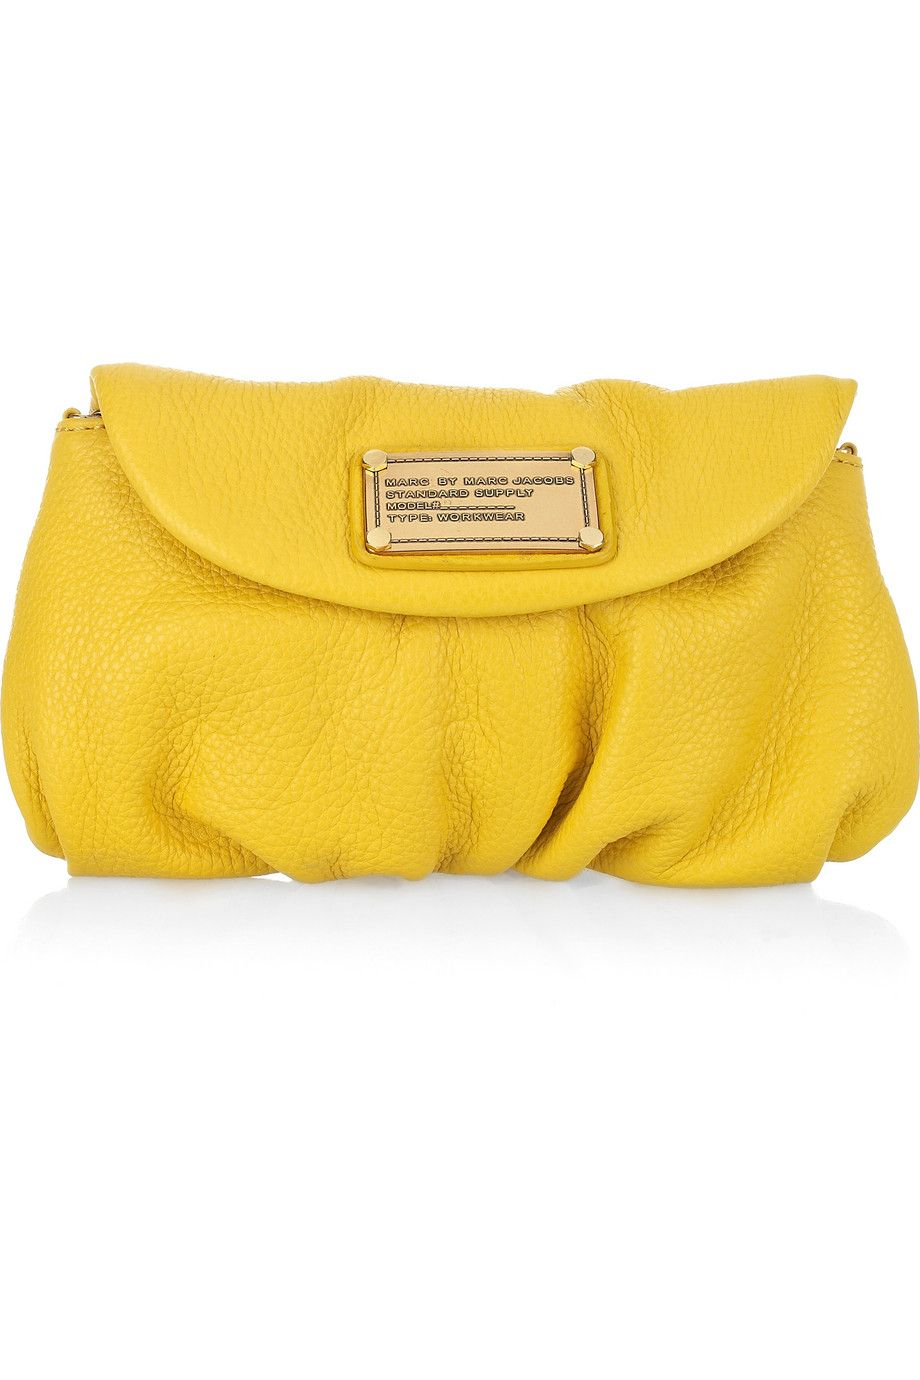 Bright yellow Karlie leather clutch   Marc by Marc Jacobs   Yellow ...